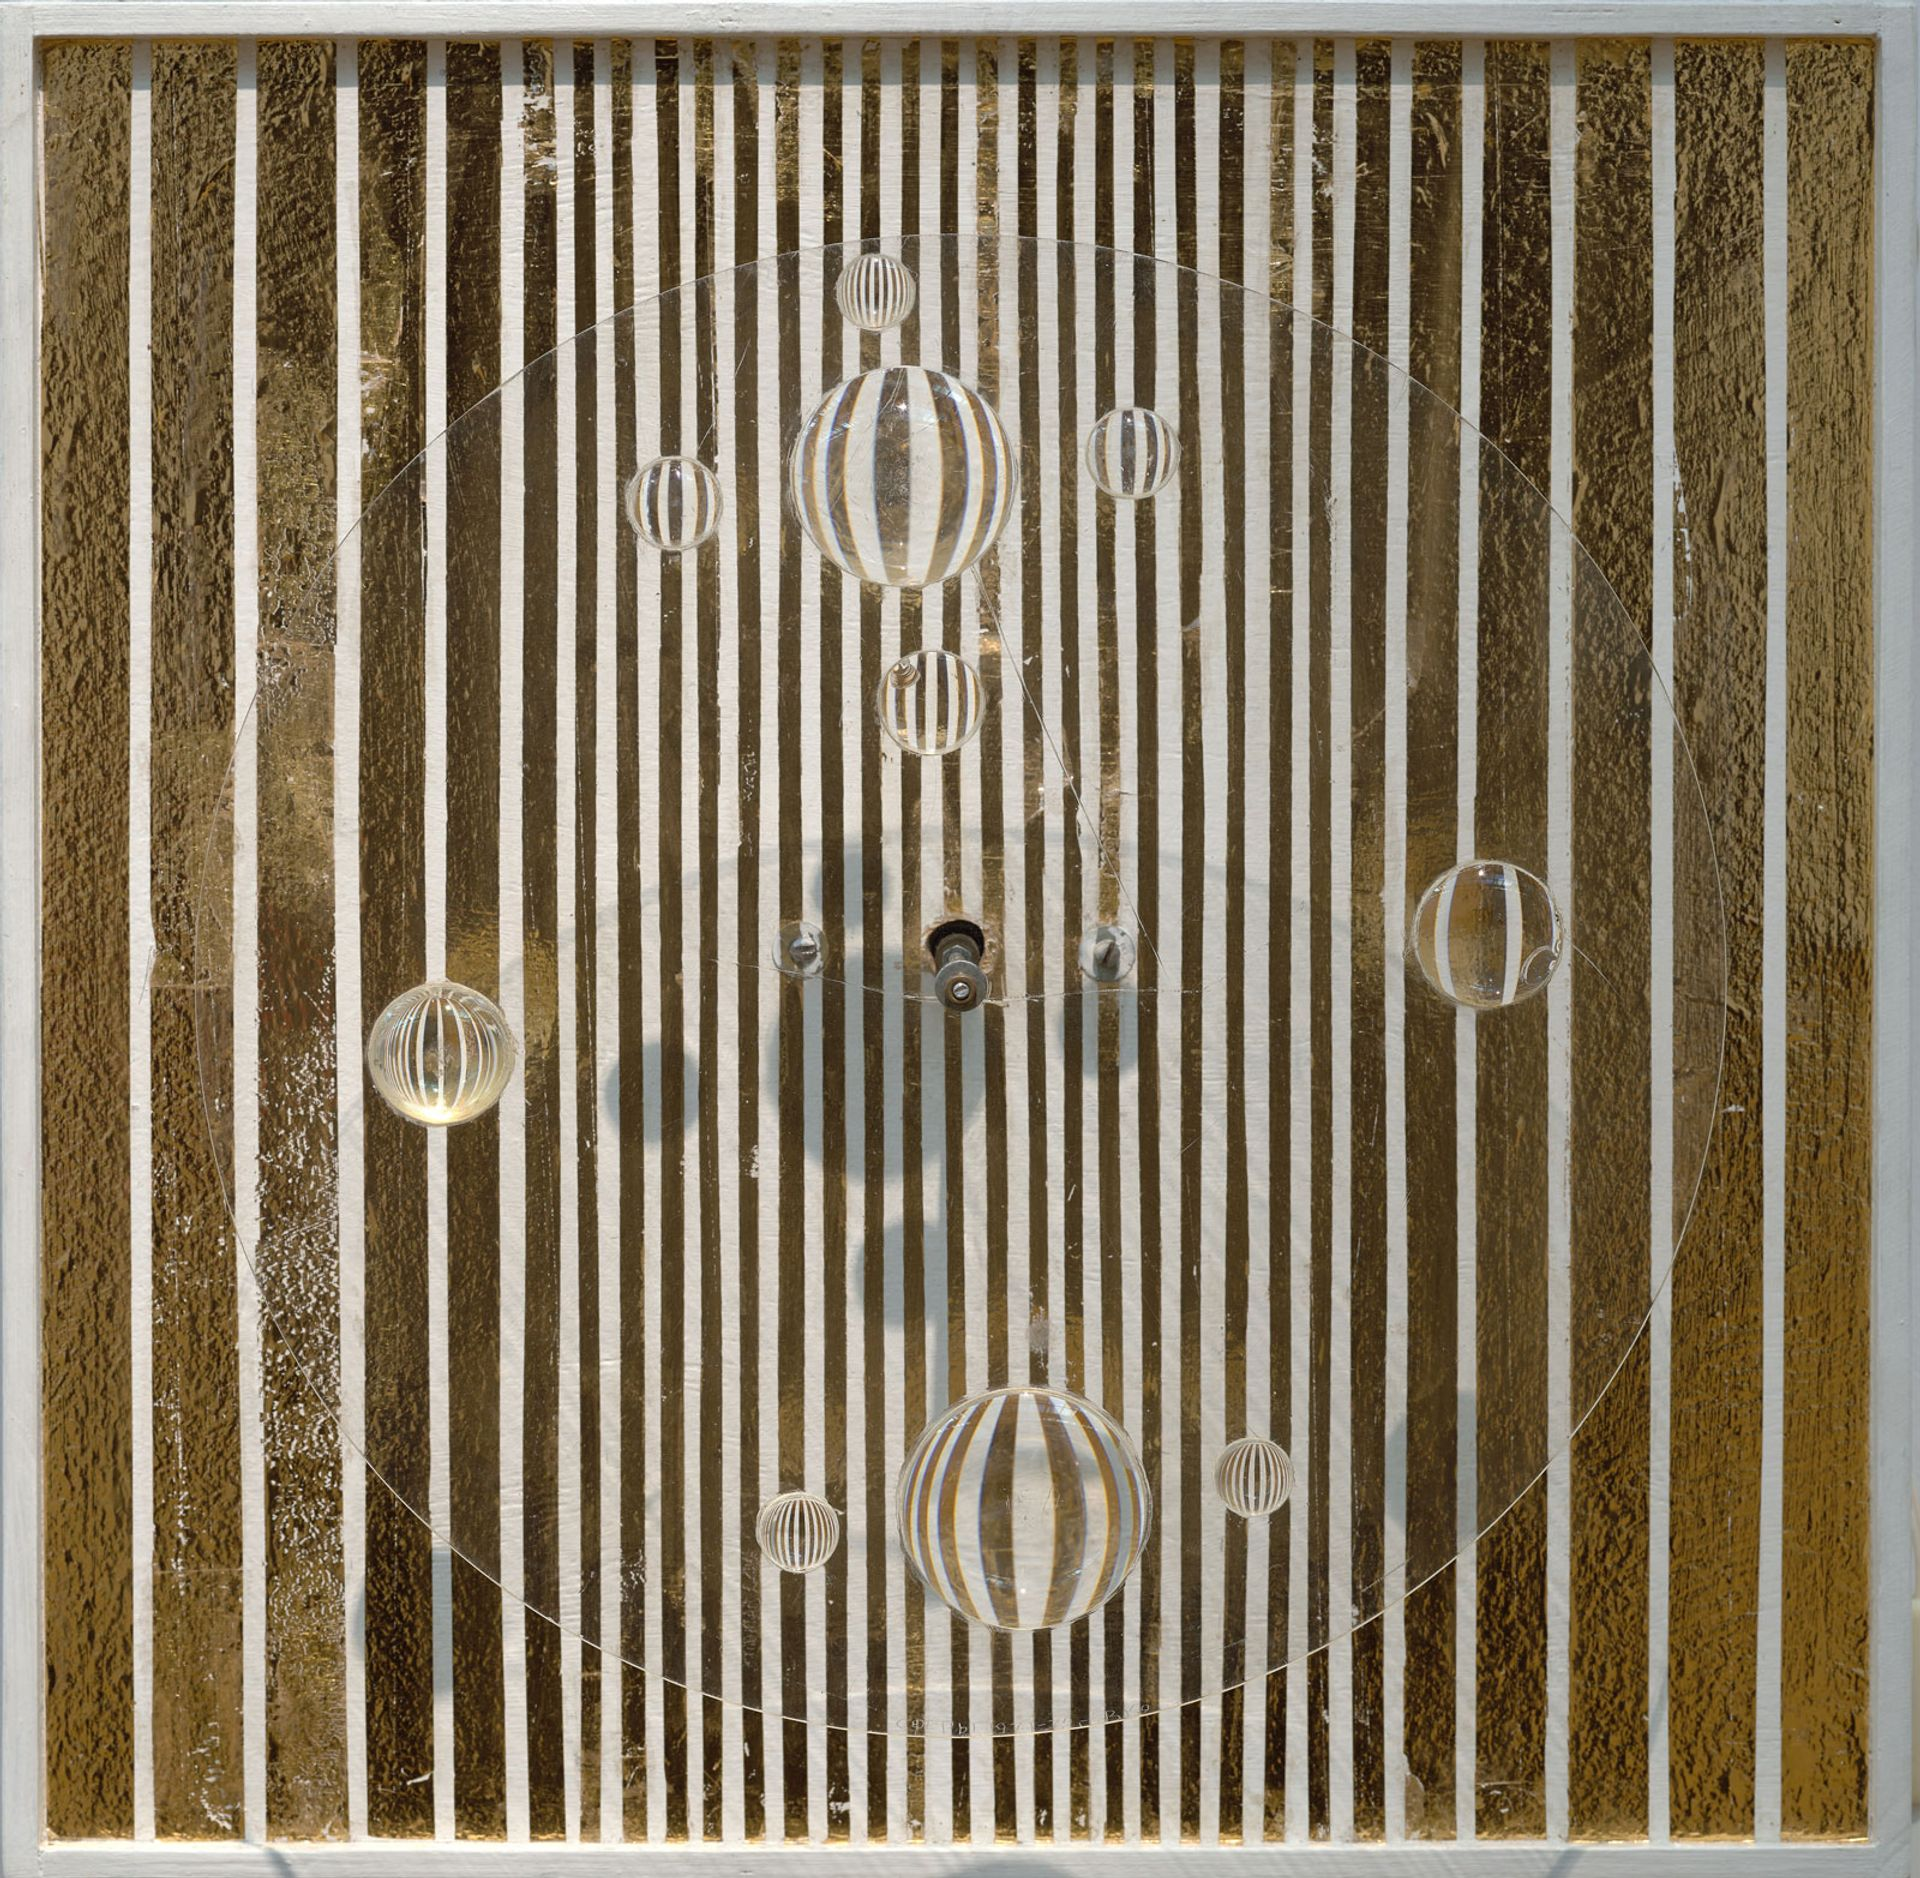 A 1972 work by Viacheslav Koleichuk made using plywood, plexiglass, lenses and a small motor